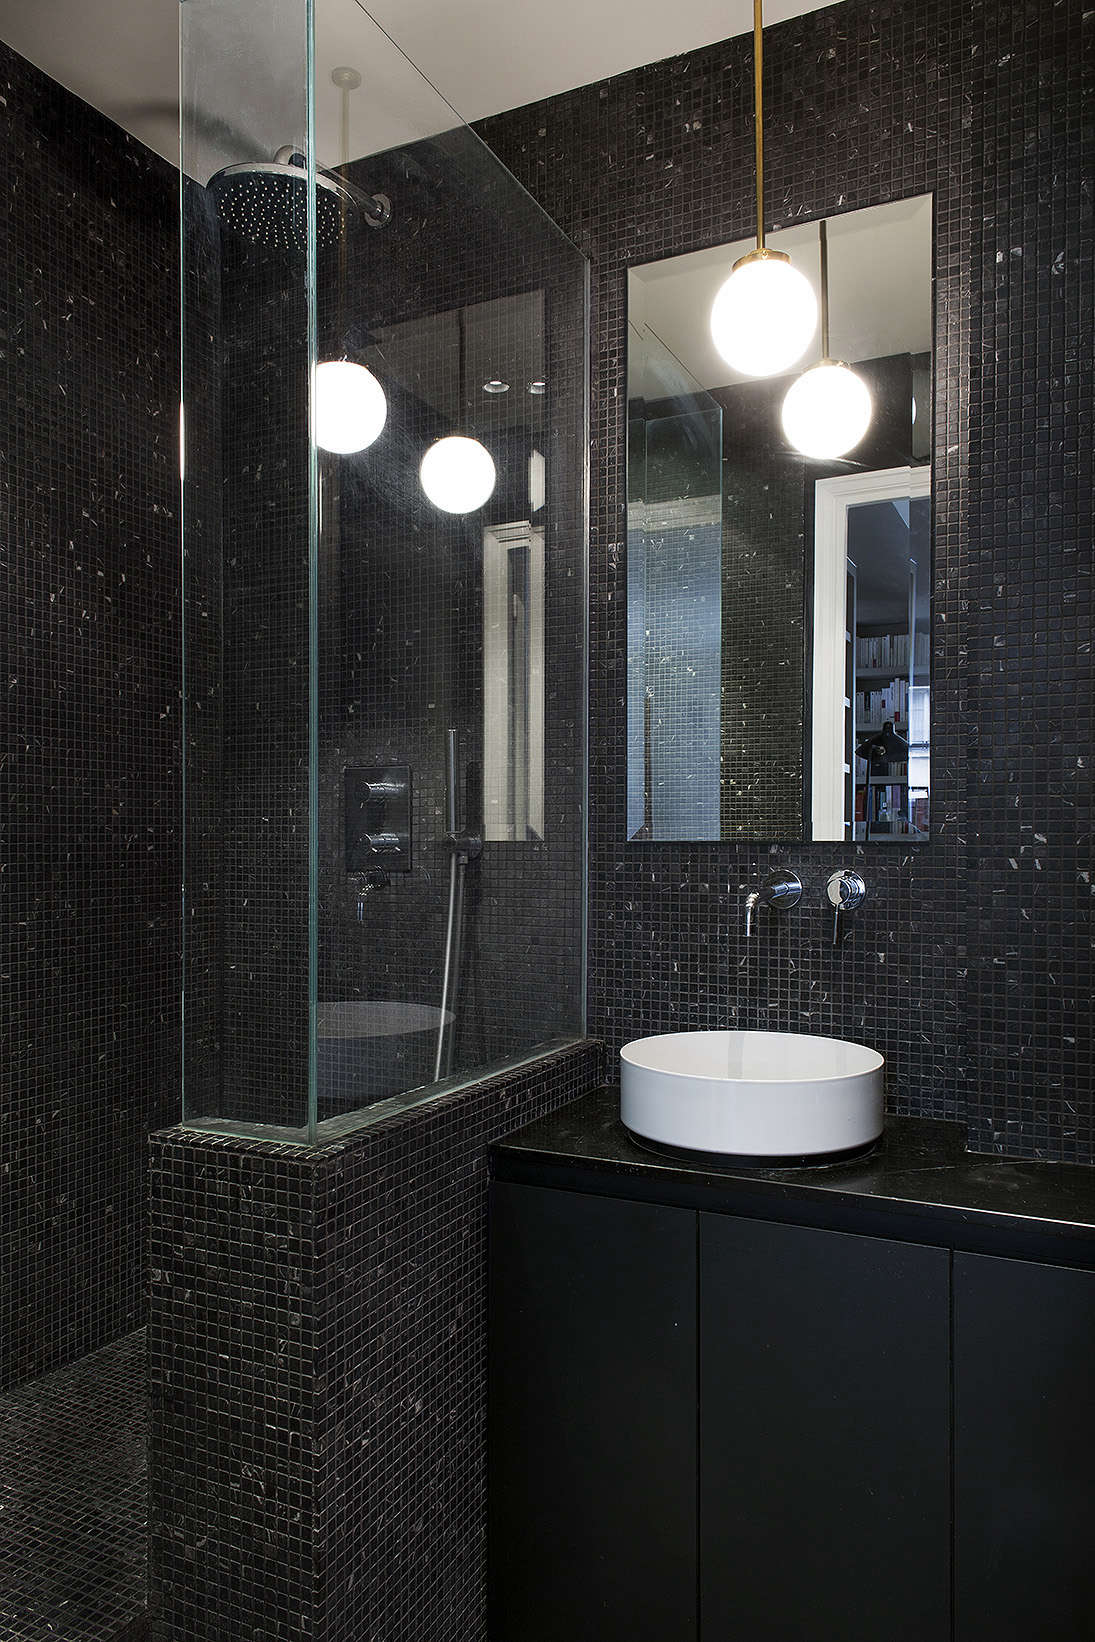 Marquina Marble Tiles And Counter Alape Glazed Enamel Sink Tiny Bathroom Paris Philippe Harden Design